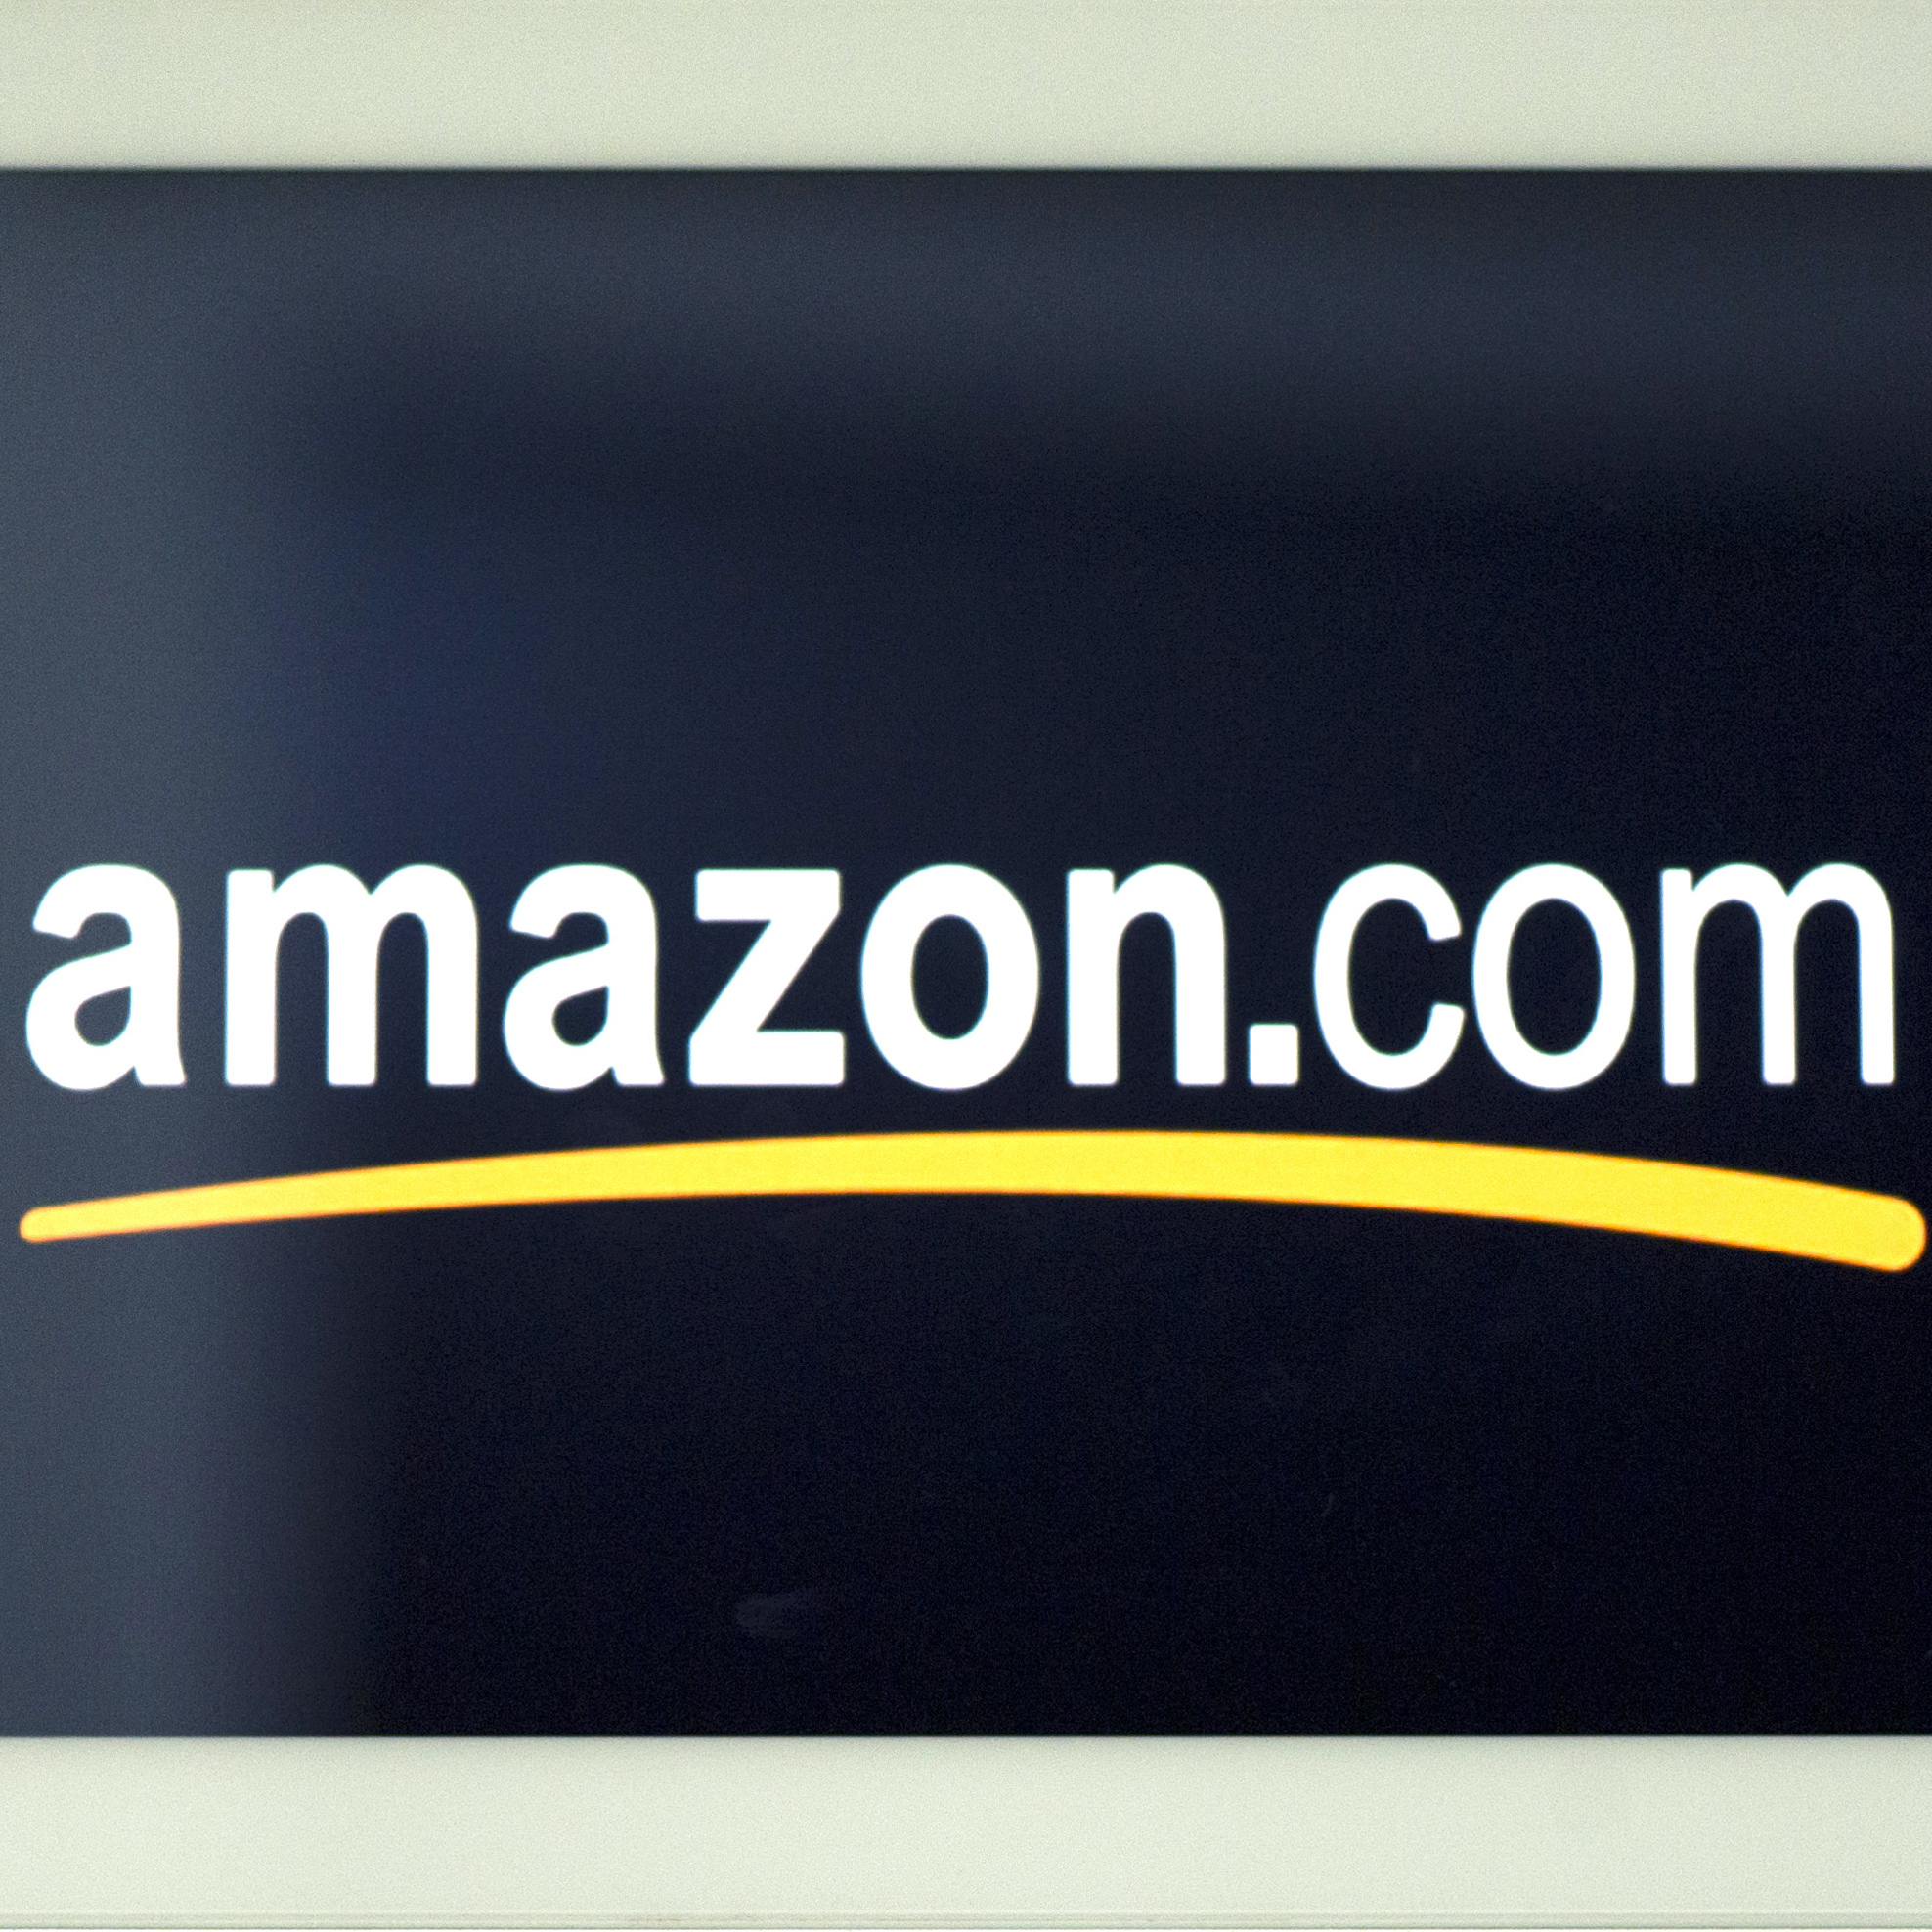 Seattle-based Amazon announced last week that it begin selling fan fiction.